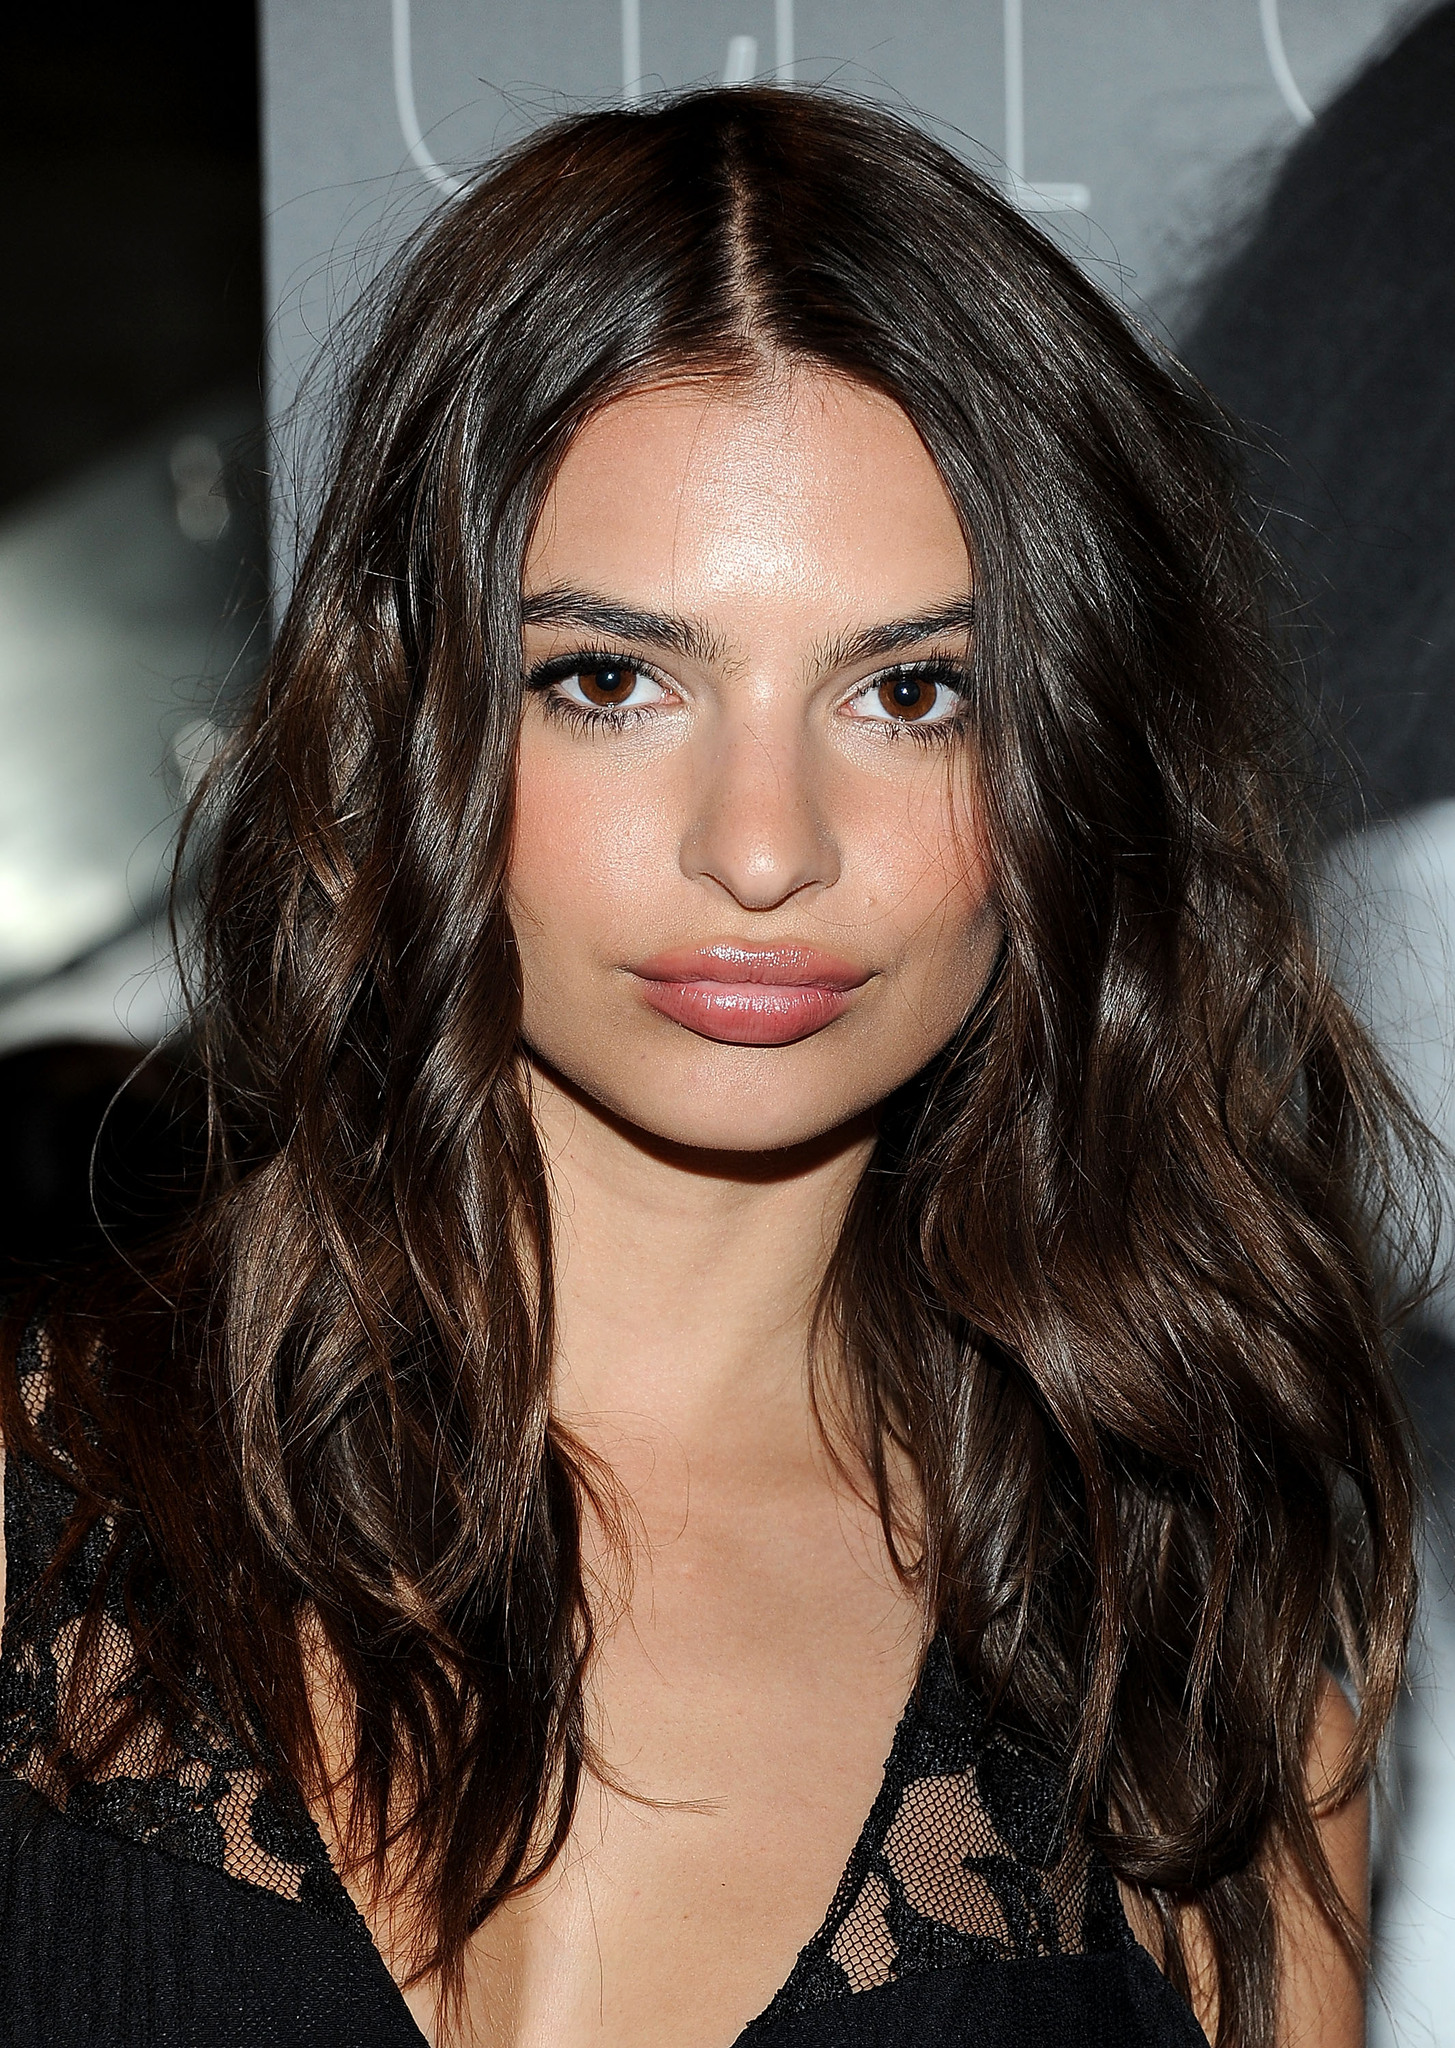 Pretty Face Emily Ratajkowski - Emily Ratajkowski Net Worth, Pics, Wallpapers, Career and Biography